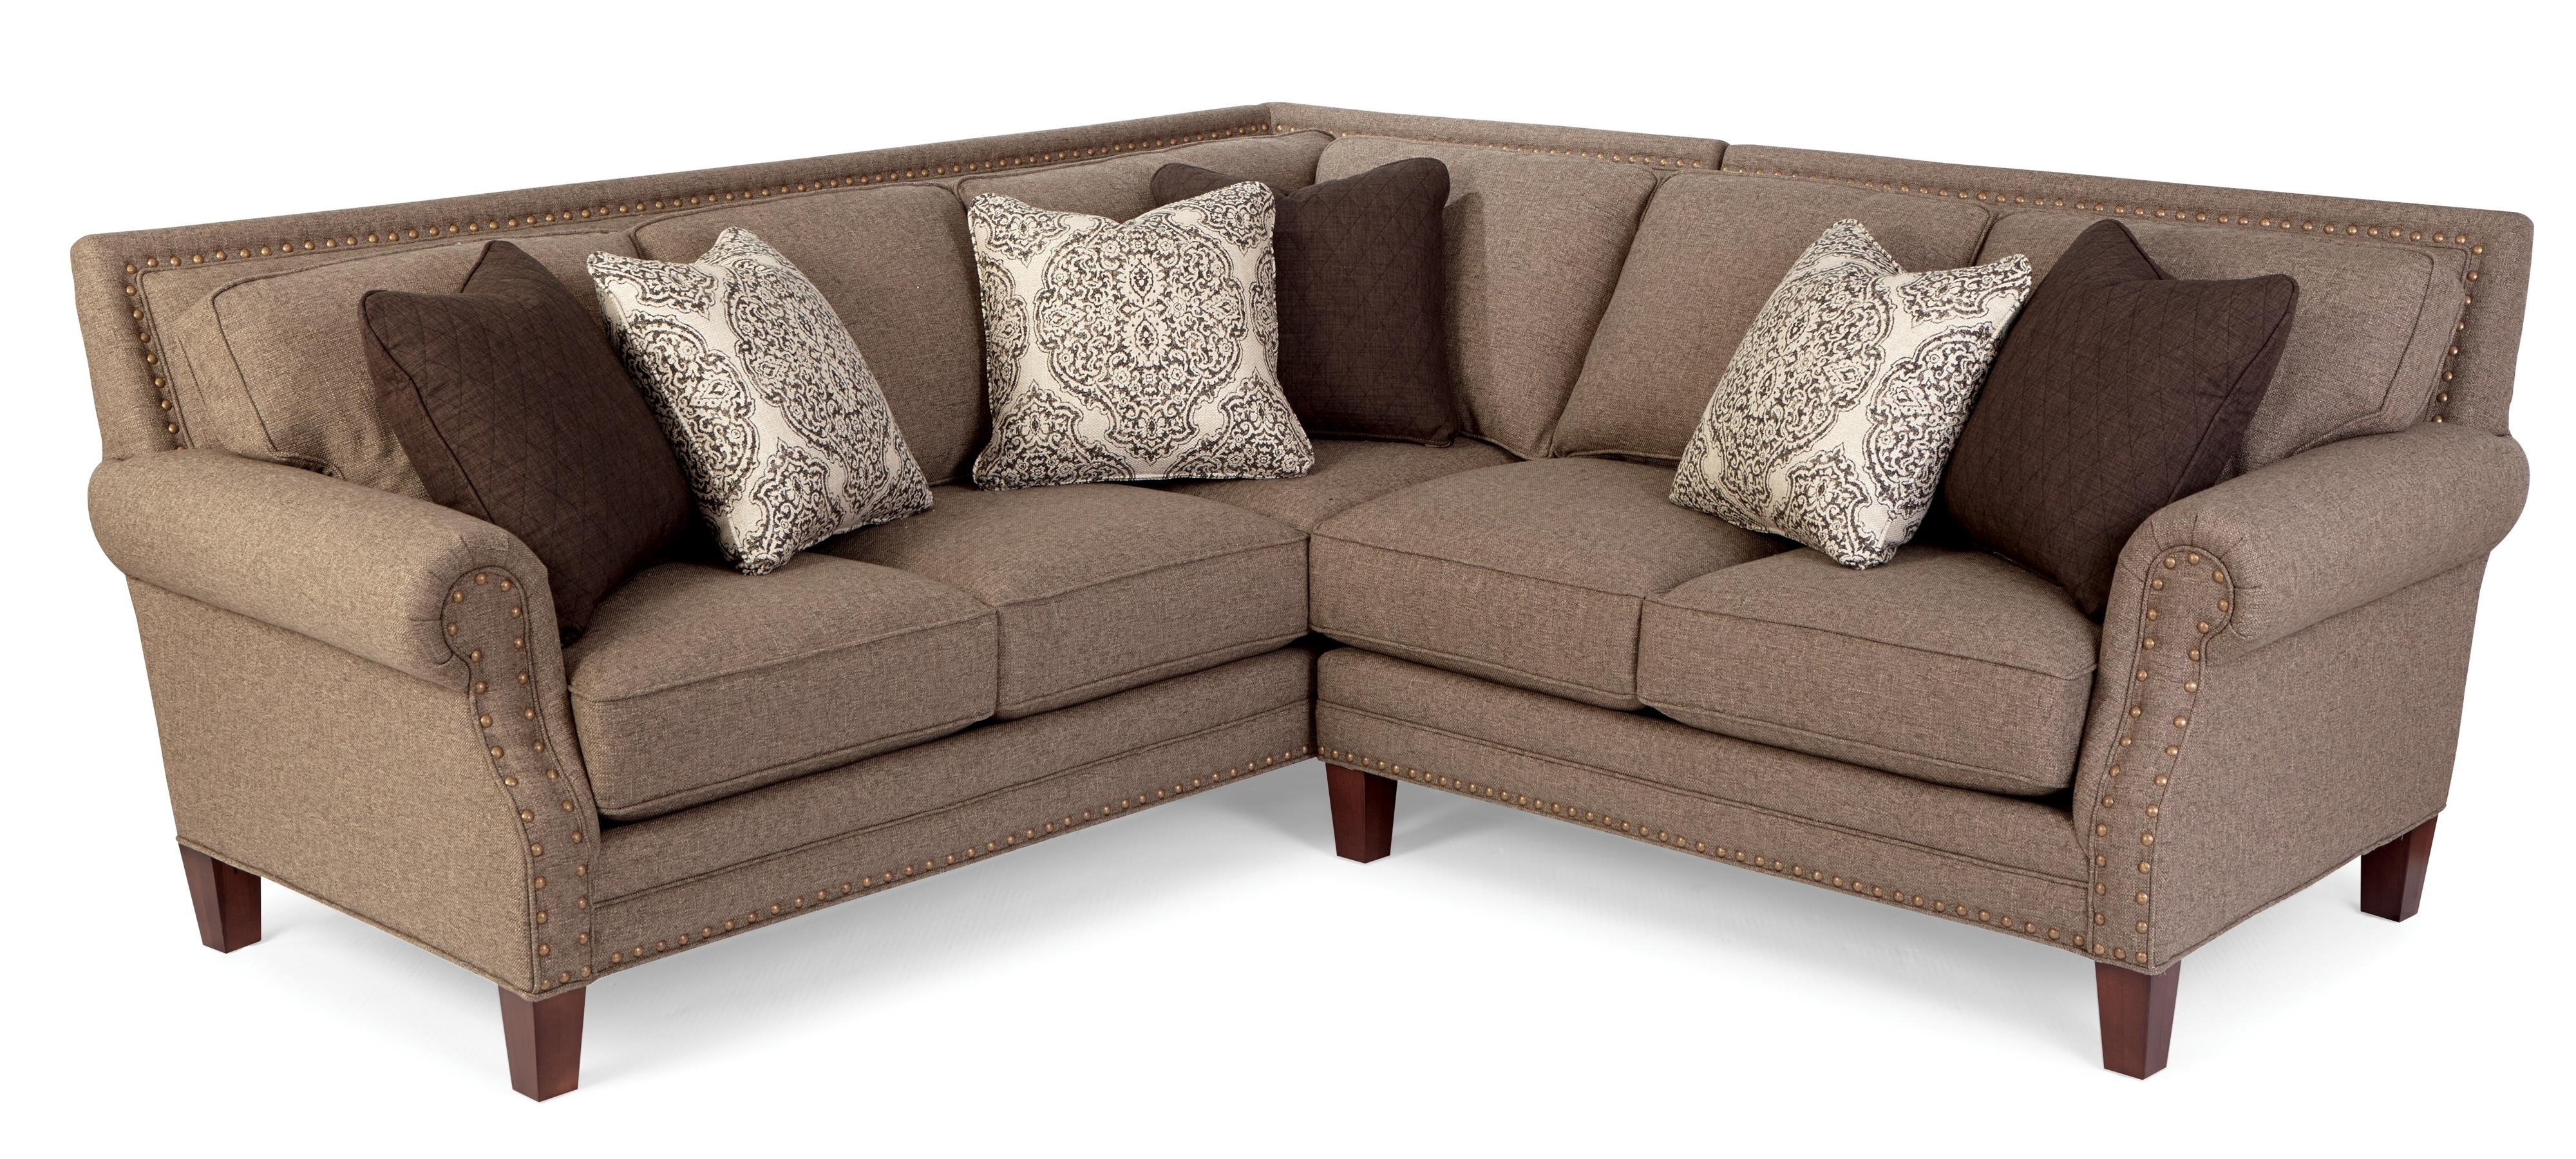 Two Piece Sectional Sofa With Rolled Arms And Light Brass Within Current Sectional Sofas With Nailheads (View 19 of 20)